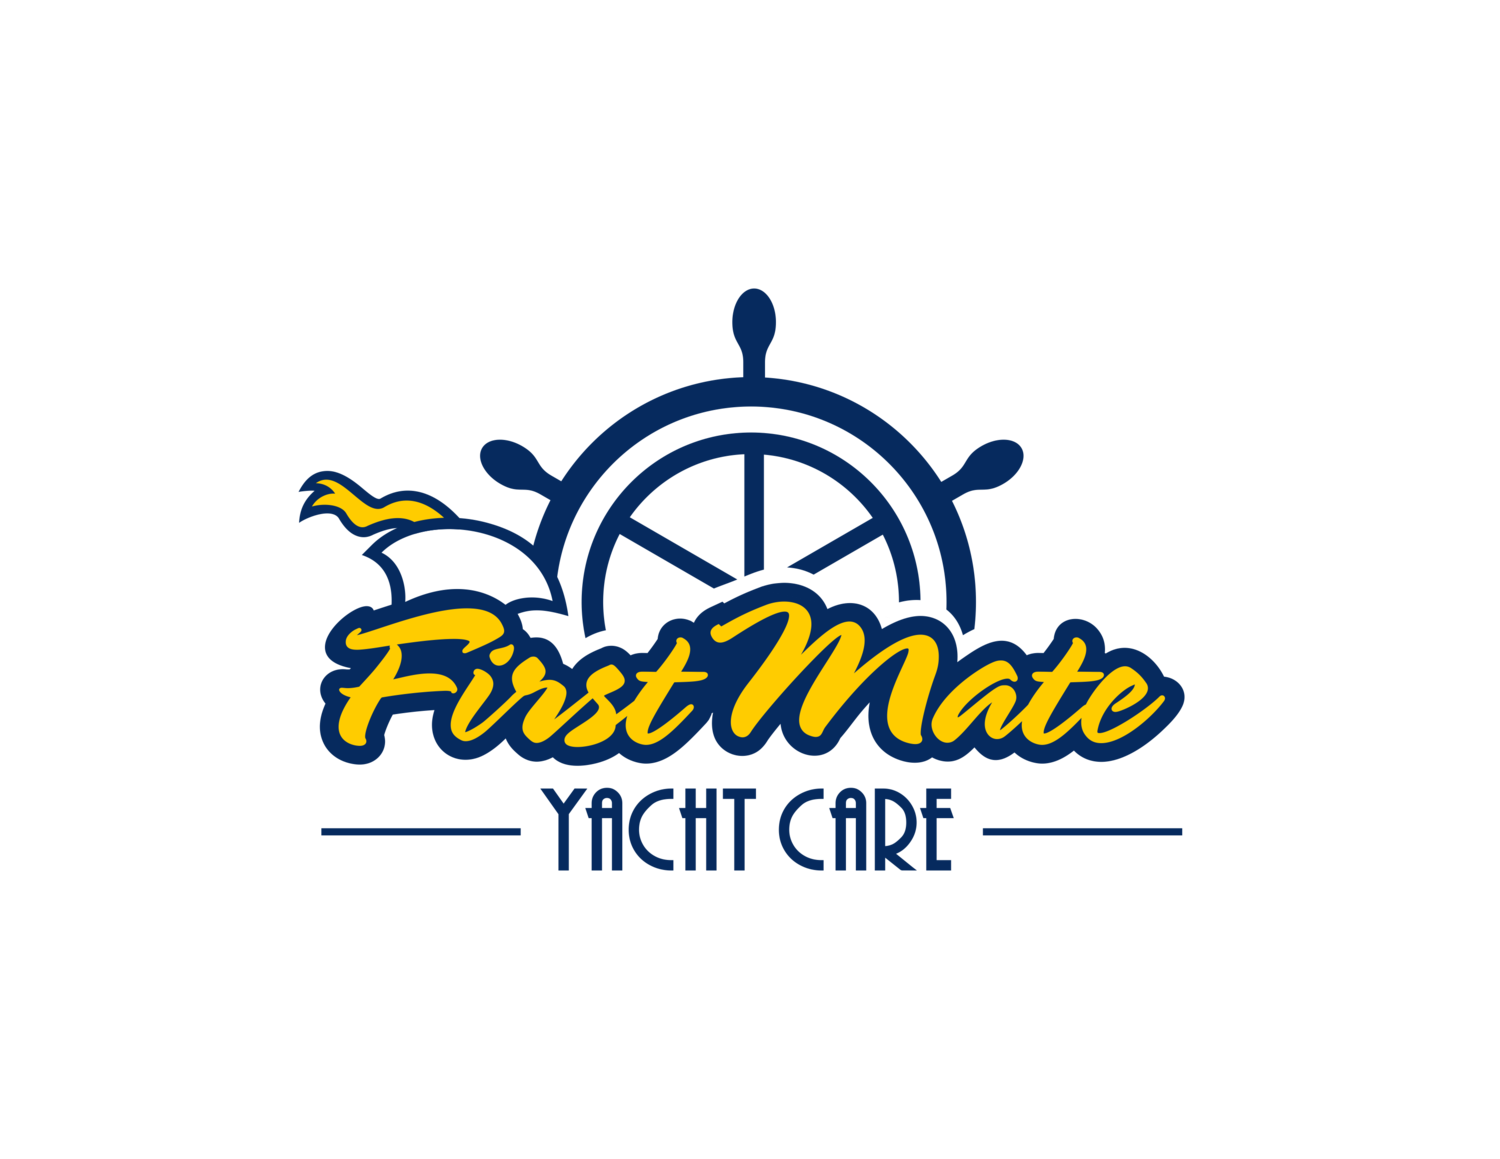 First Mate Yacht Care